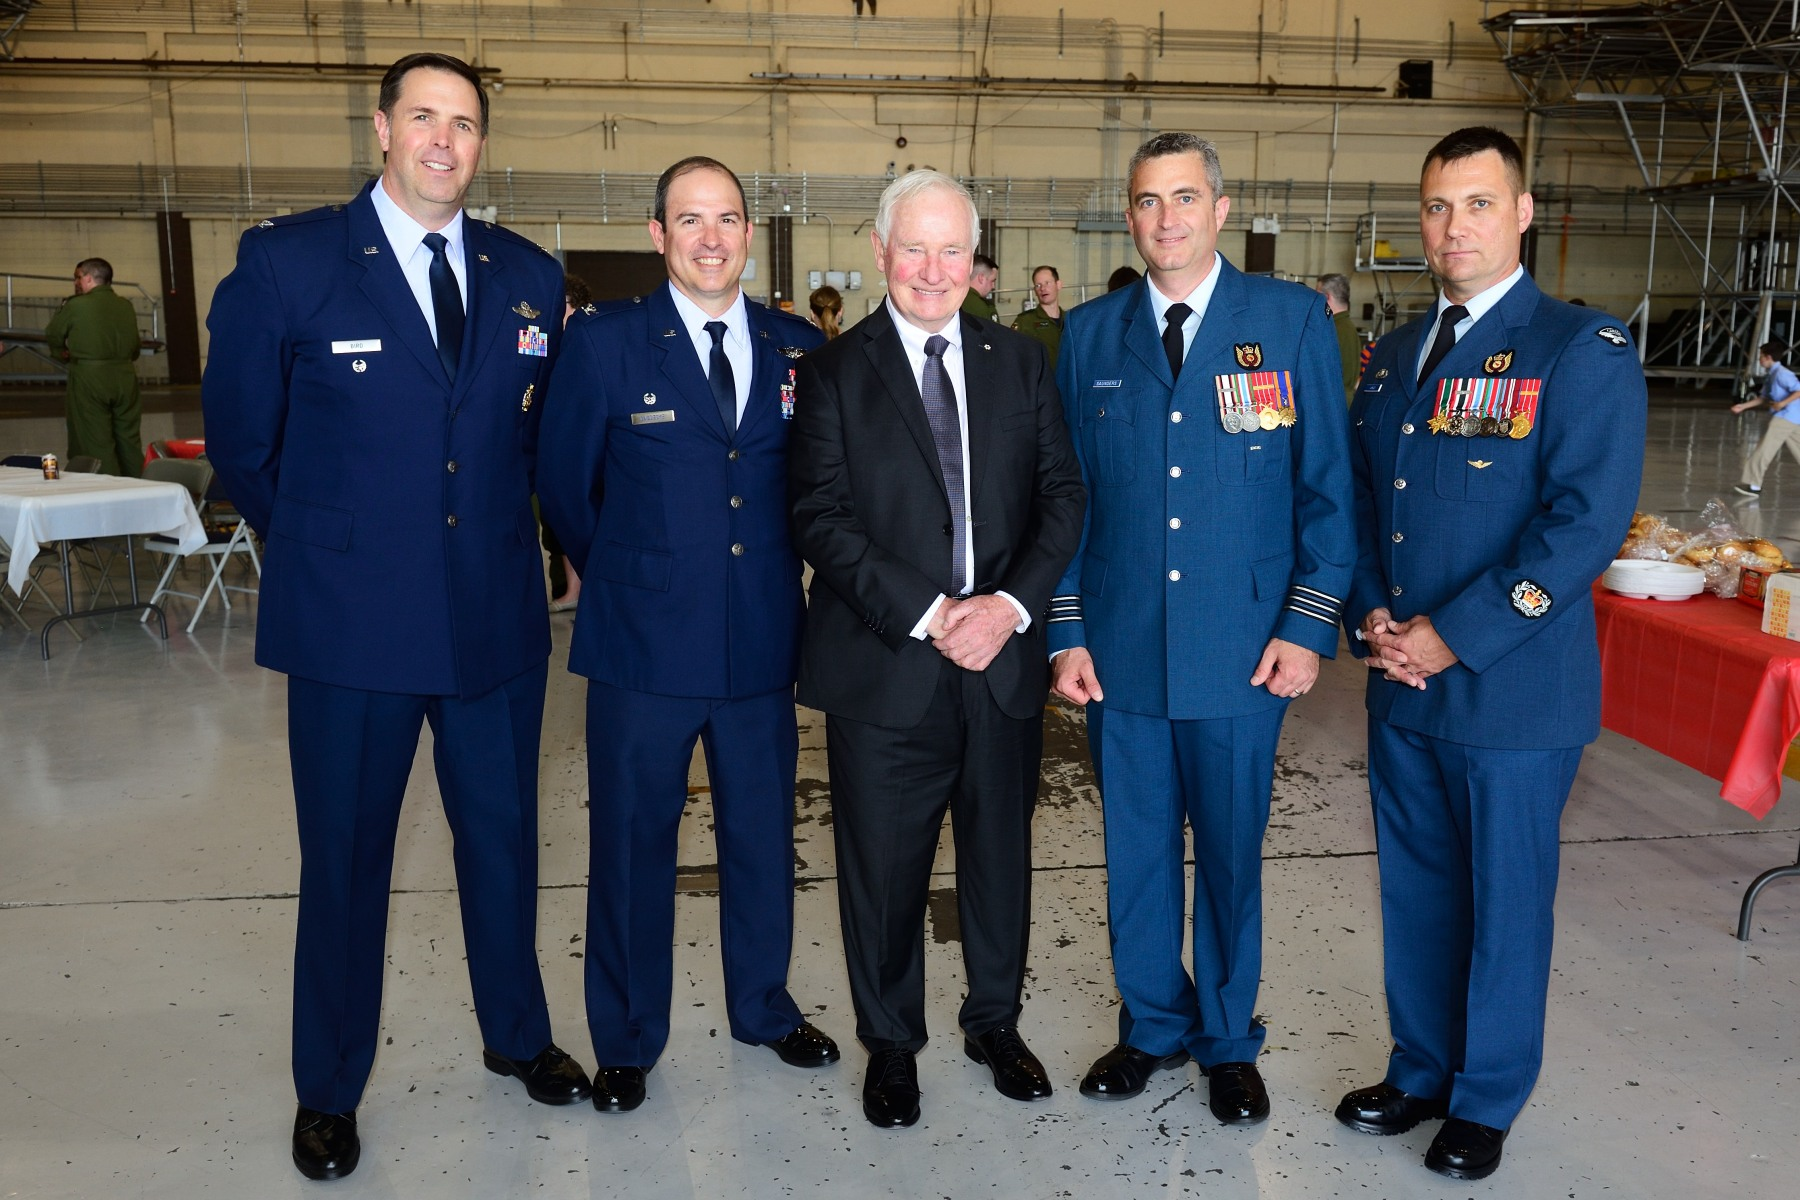 His Excellency with the Canadian and American commanders.